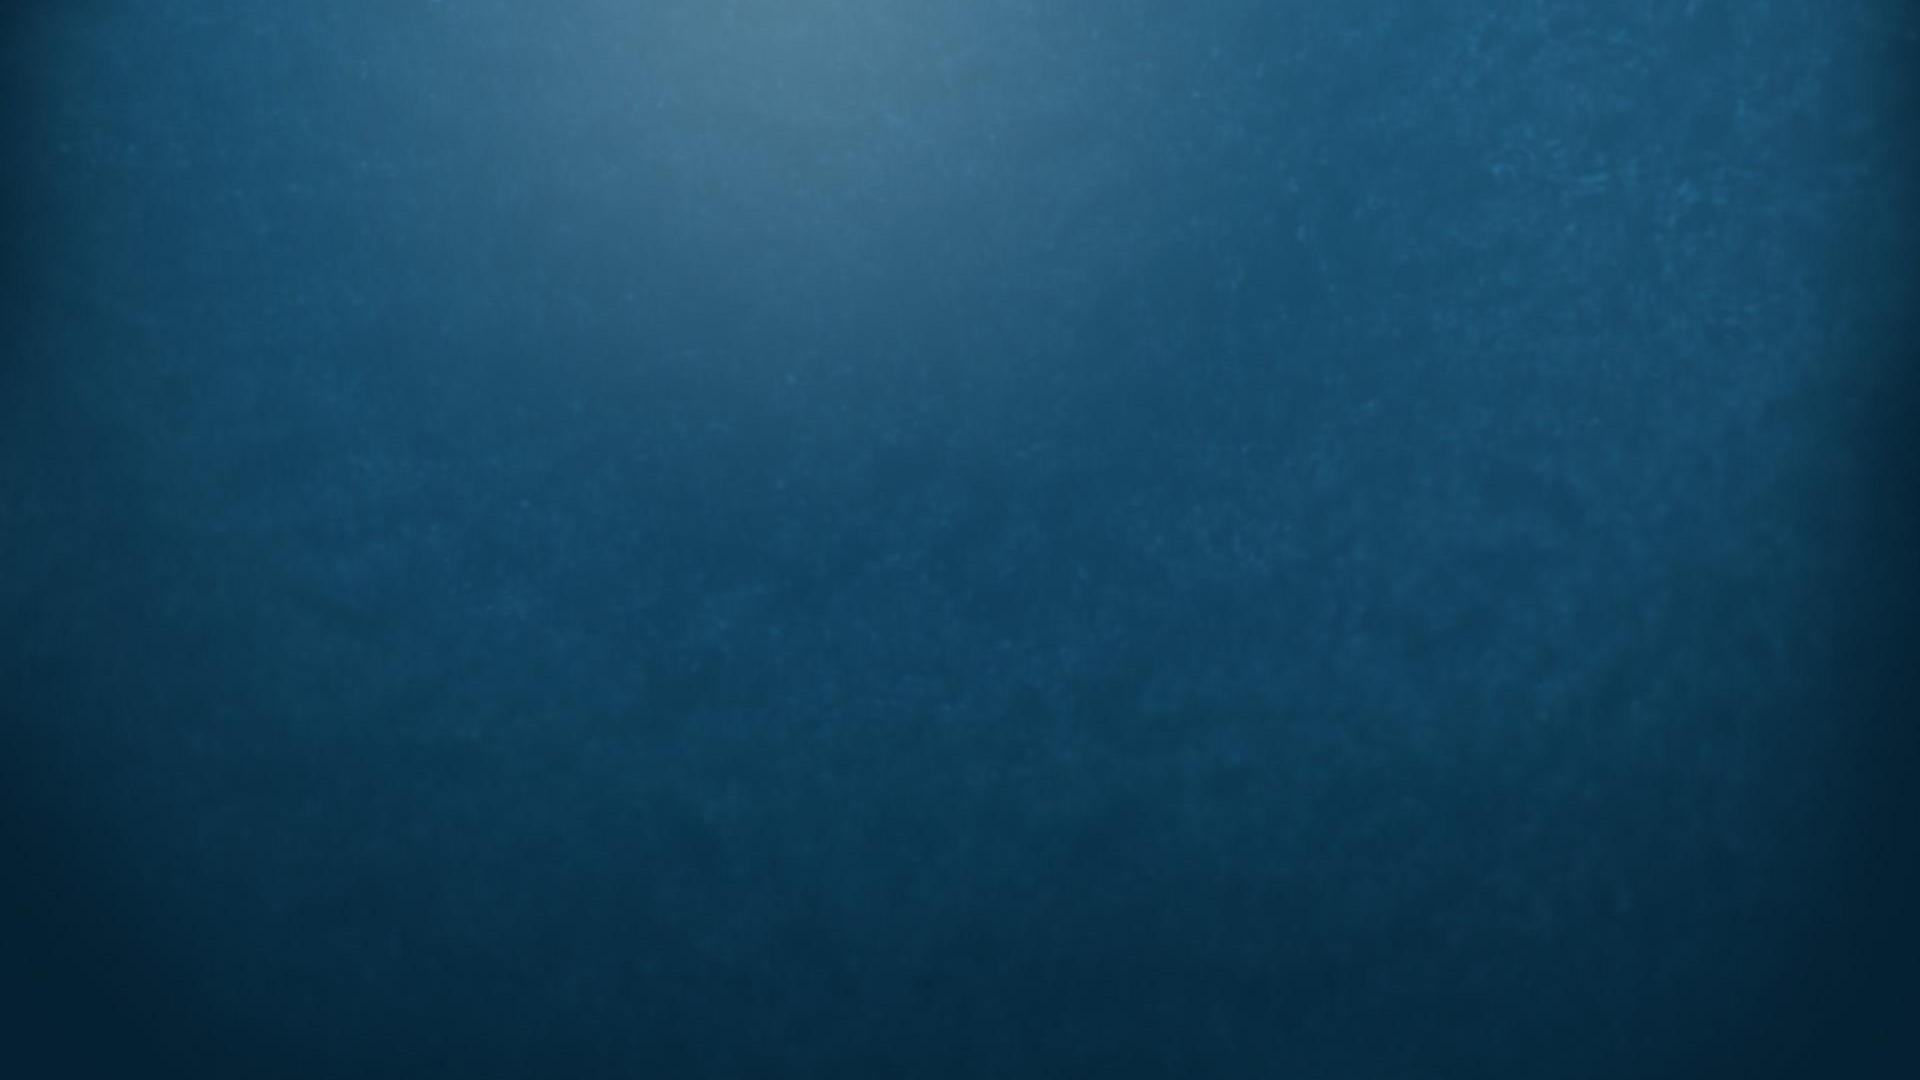 1920x1080 blue wallpaper: Blue HD 1920x1080 Wallpaper